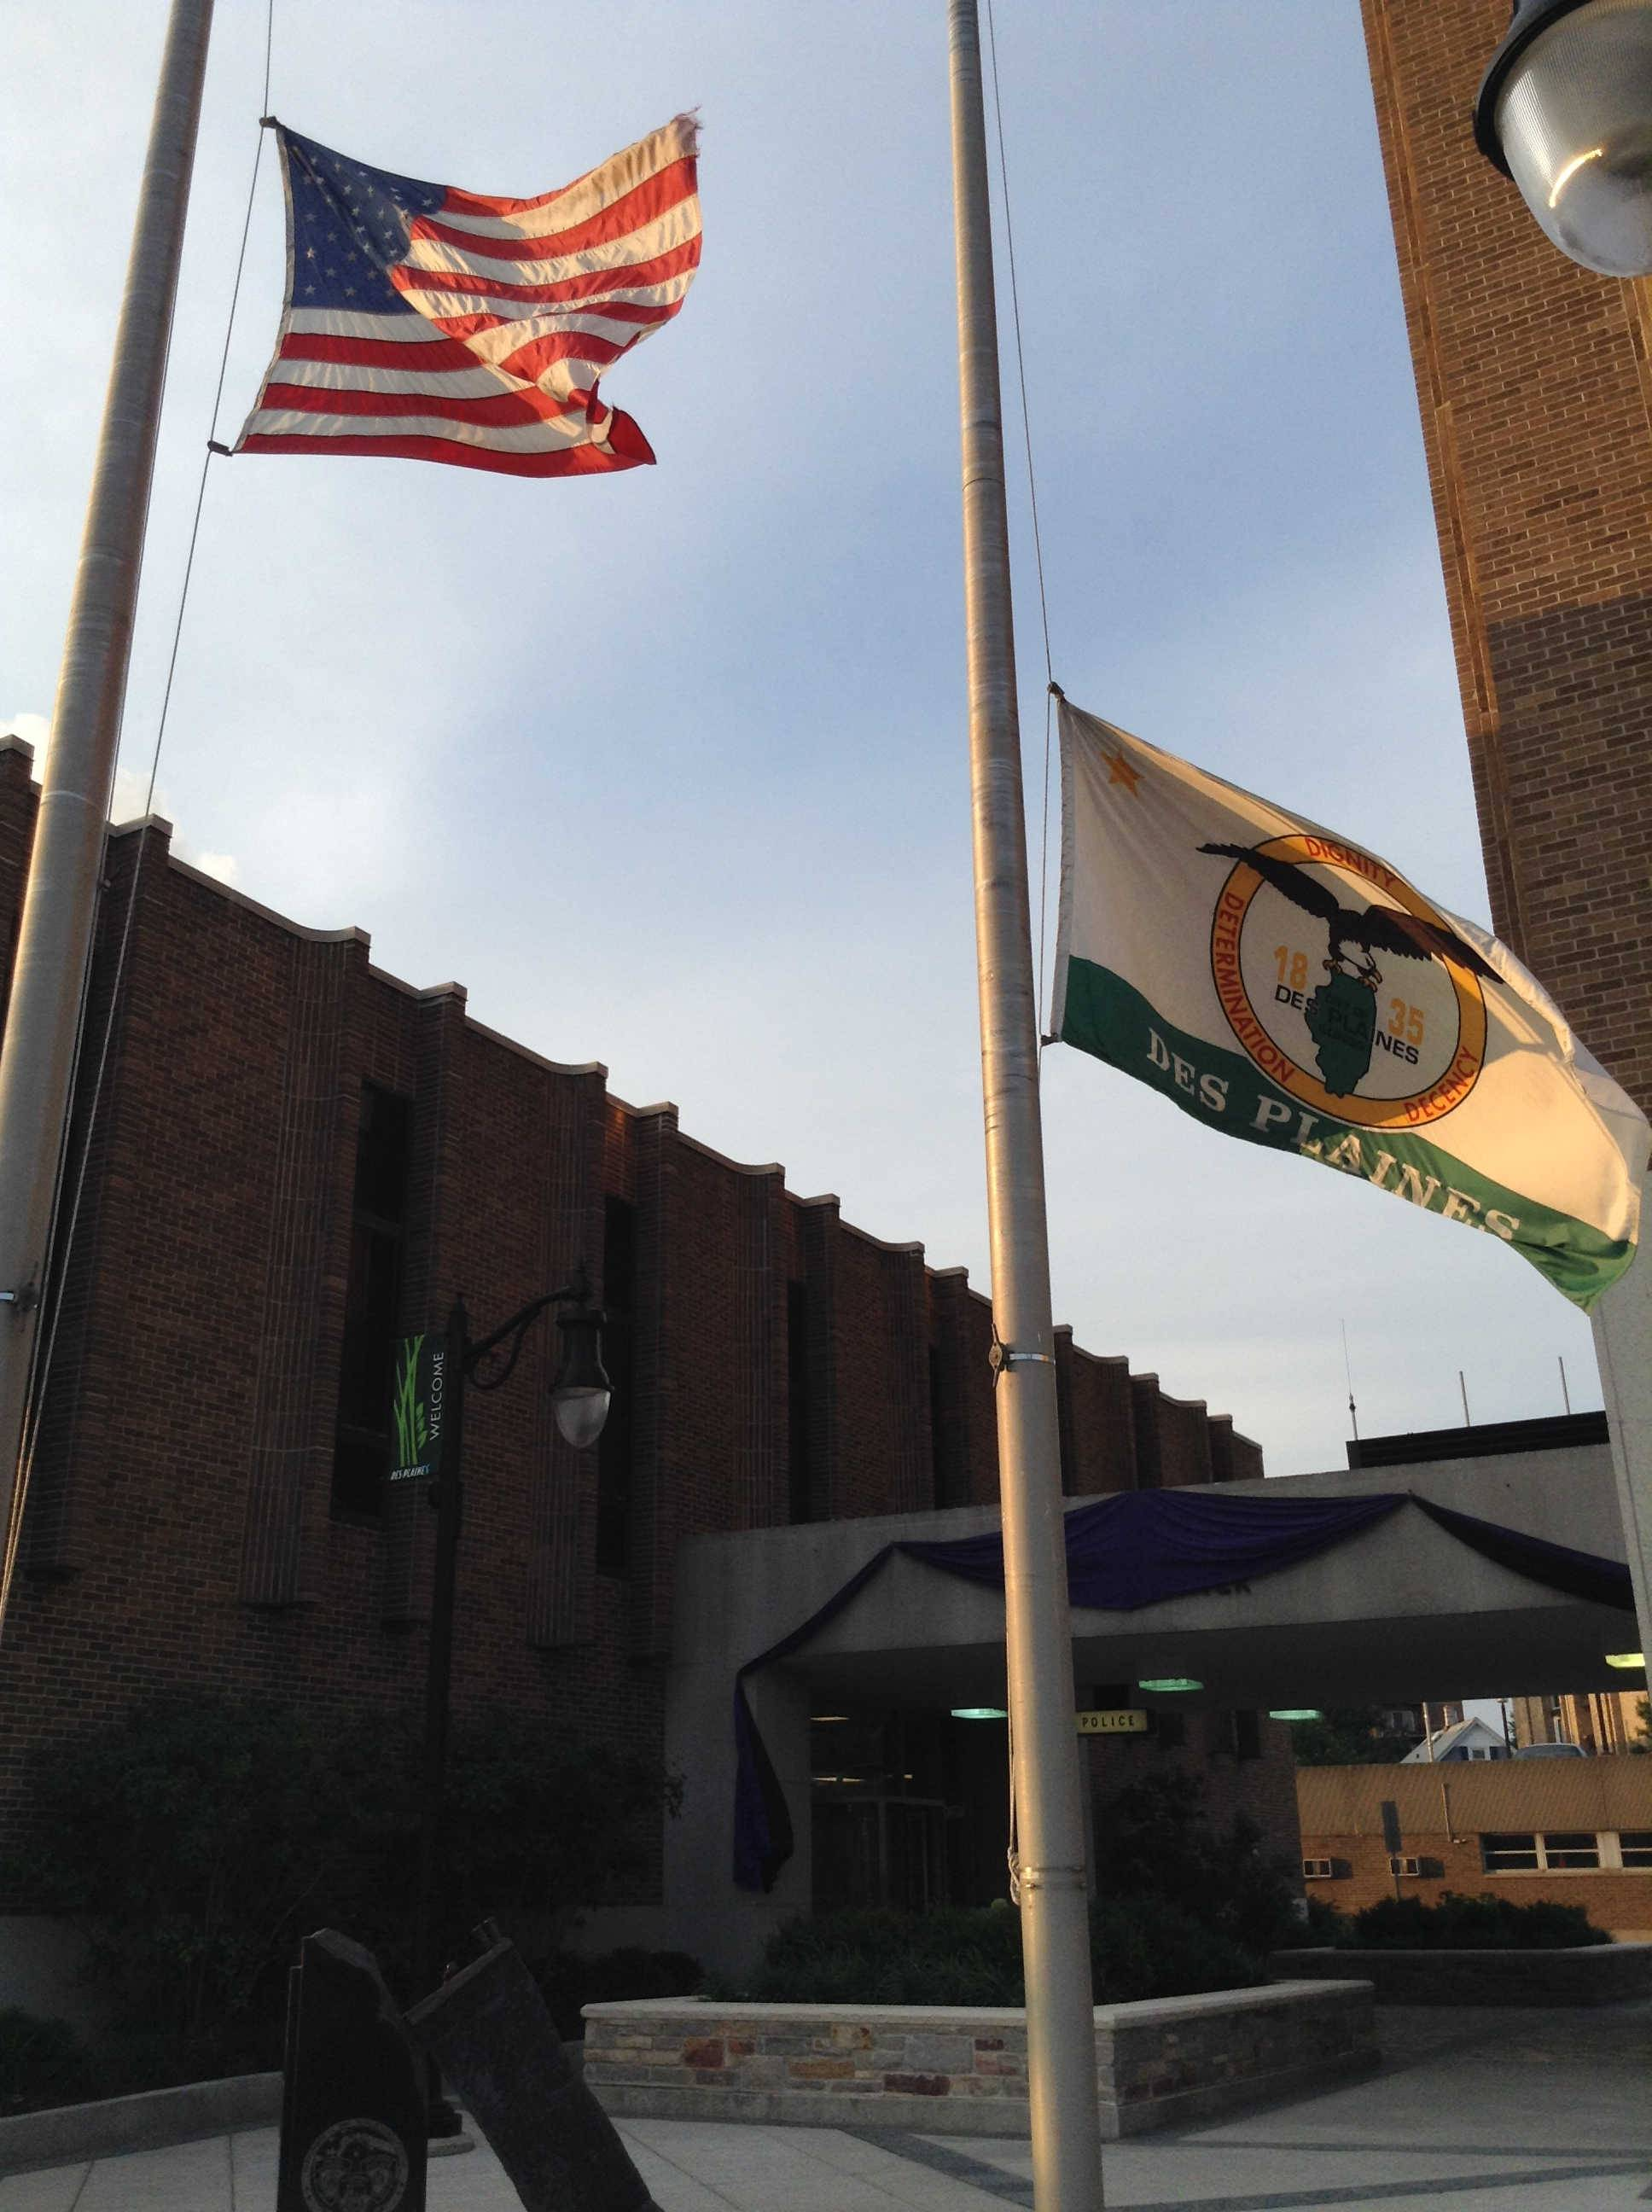 Flags fly at half-staff outside Des Plaines city hall Wednesday in honor of Alderman Joanna Sojka, who died late Monday of an apparent stroke.